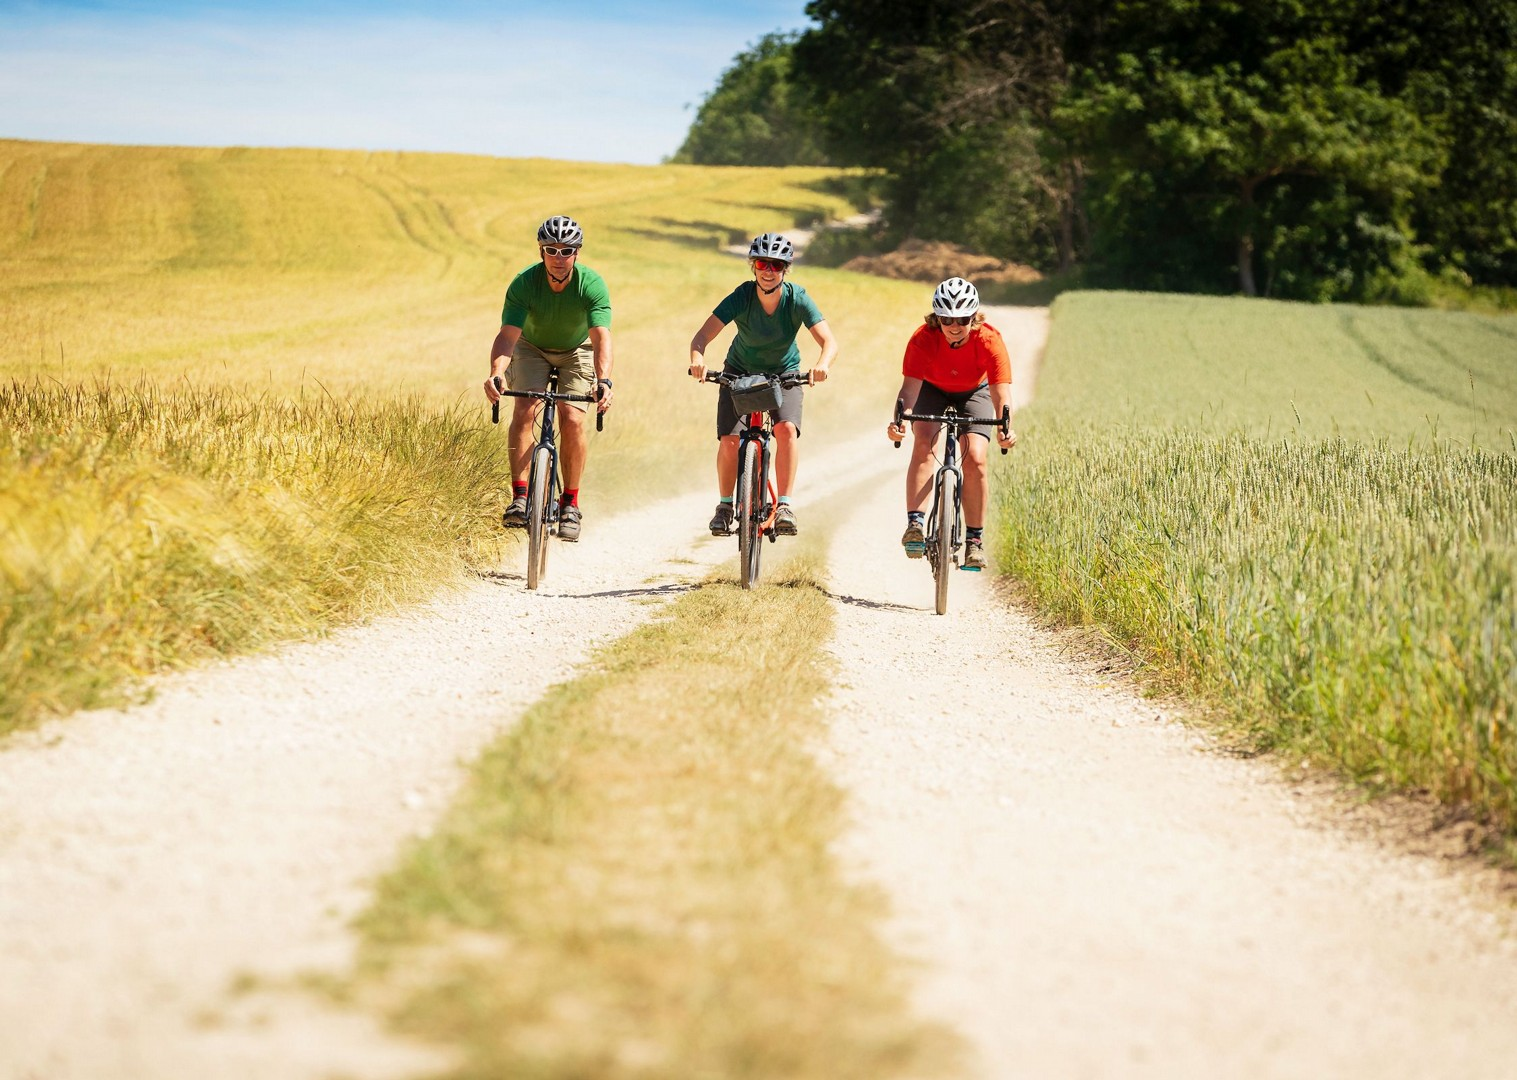 cycling-only-tracks-uk-yorkshire-countryside.jpg - UK - Yorkshire Wolds - 5 Days Cycling - Self-Guided Leisure Cycling Holiday - Leisure Cycling